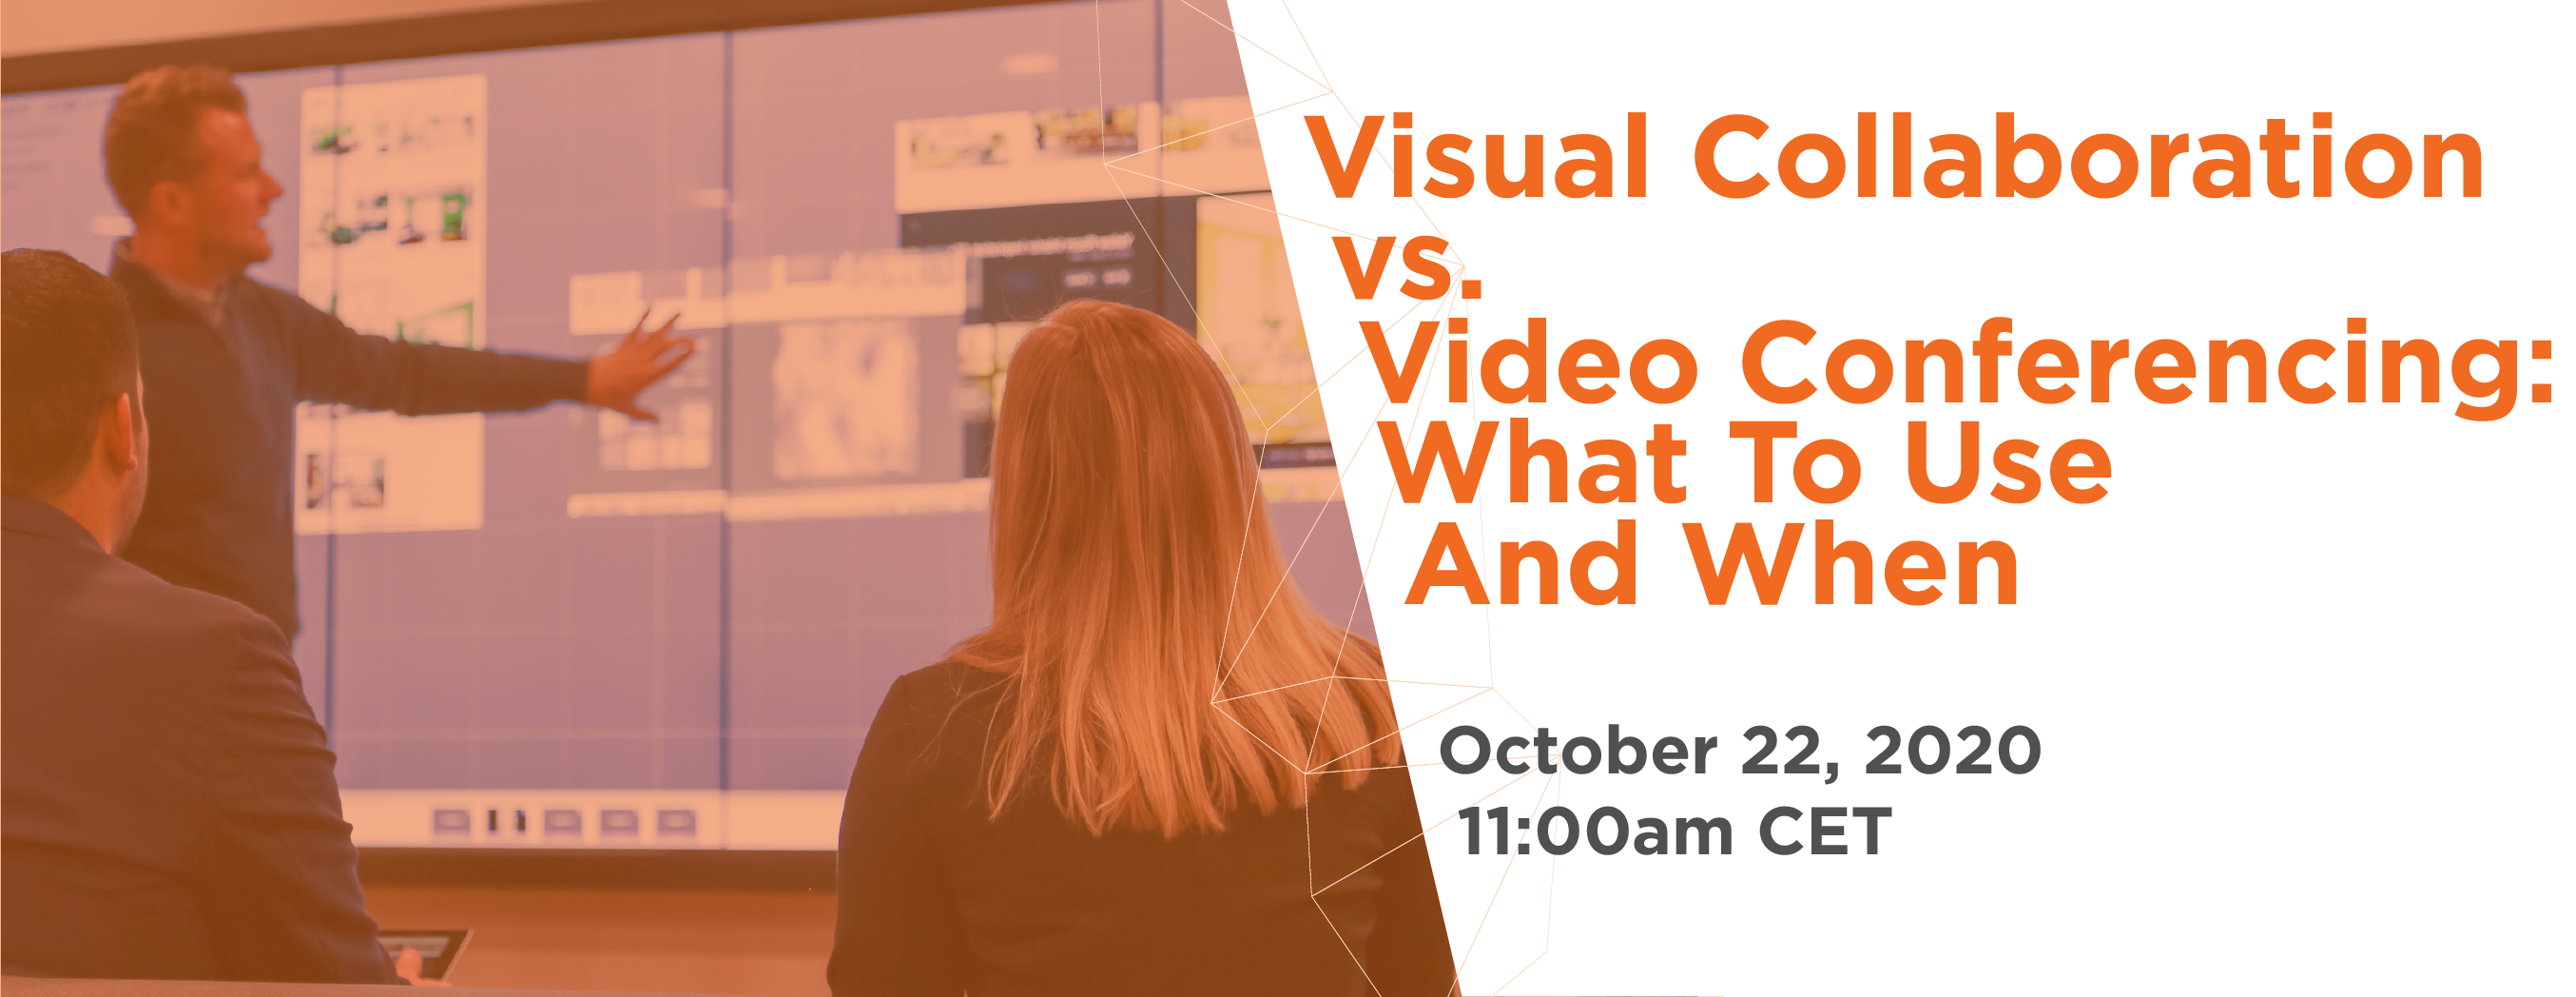 t1v-visual-collaboration-vs-video-conferencing-what-to-use-and-when-webinar-graphic-10-22-2020-cet-email-38